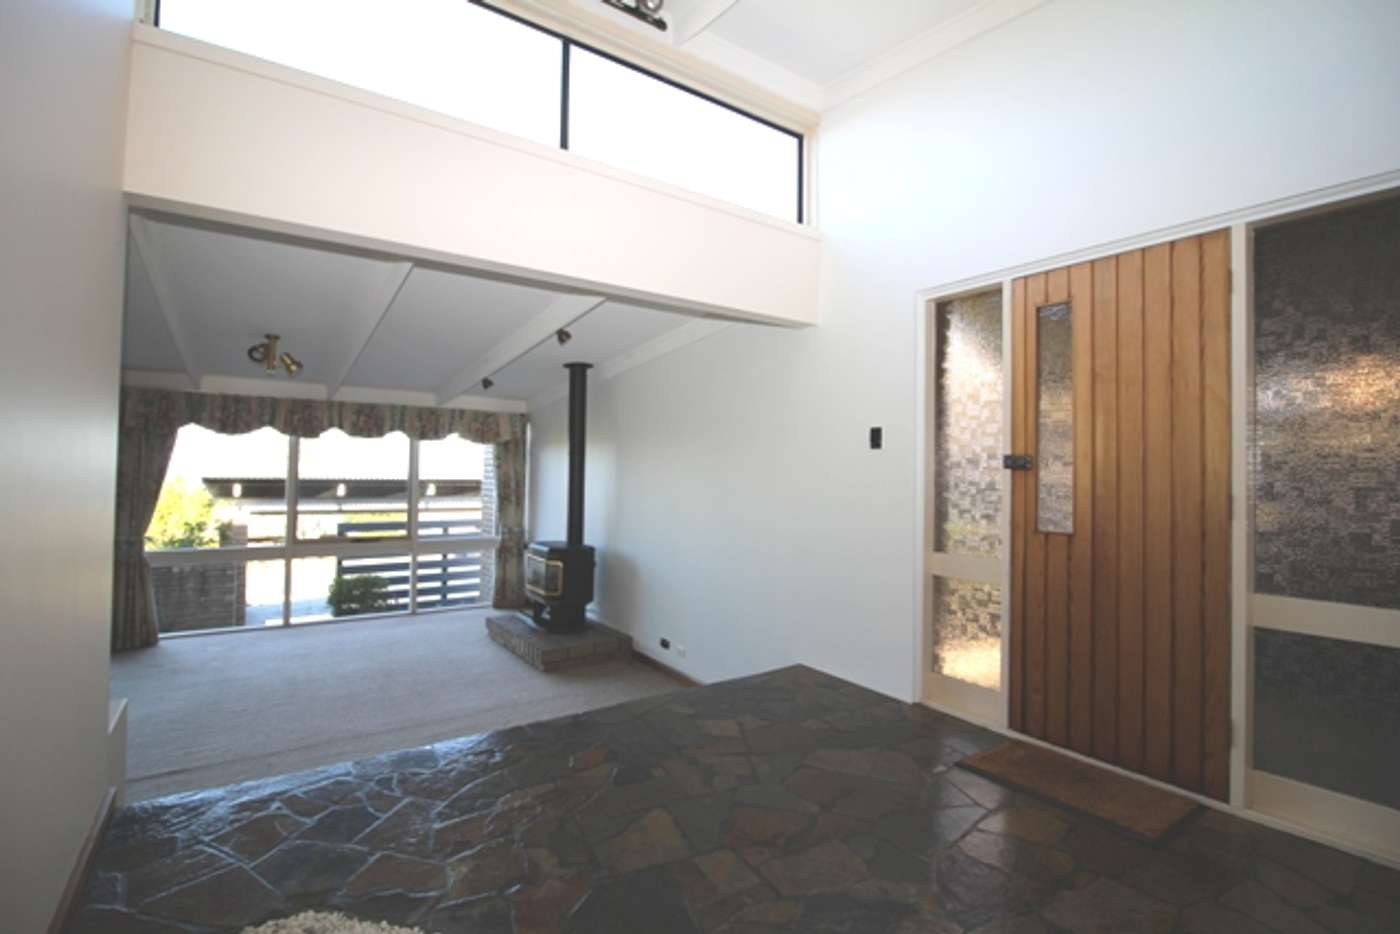 Sixth view of Homely house listing, 20 Blume Terrace, Mount Gambier SA 5290